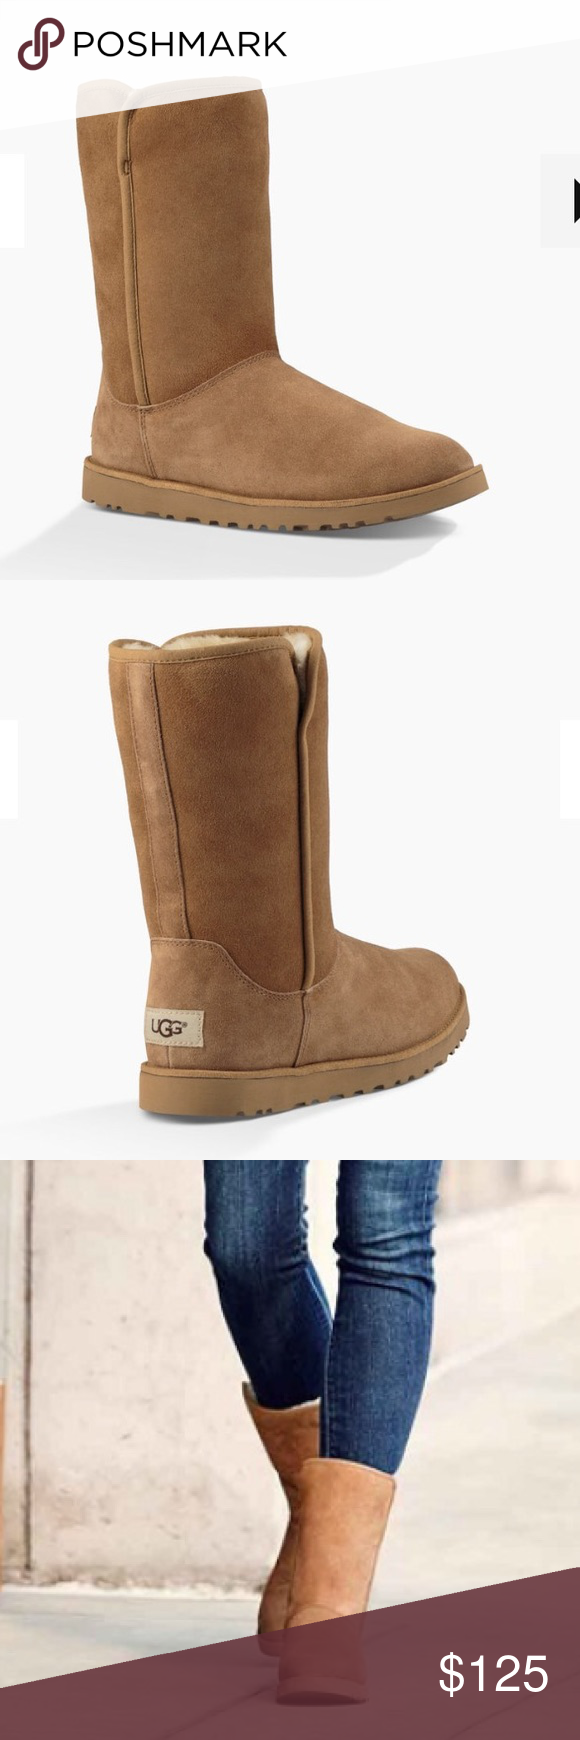 NEW UGG MICHELLE  CHESTNUT This Classic Slim style has been crafted